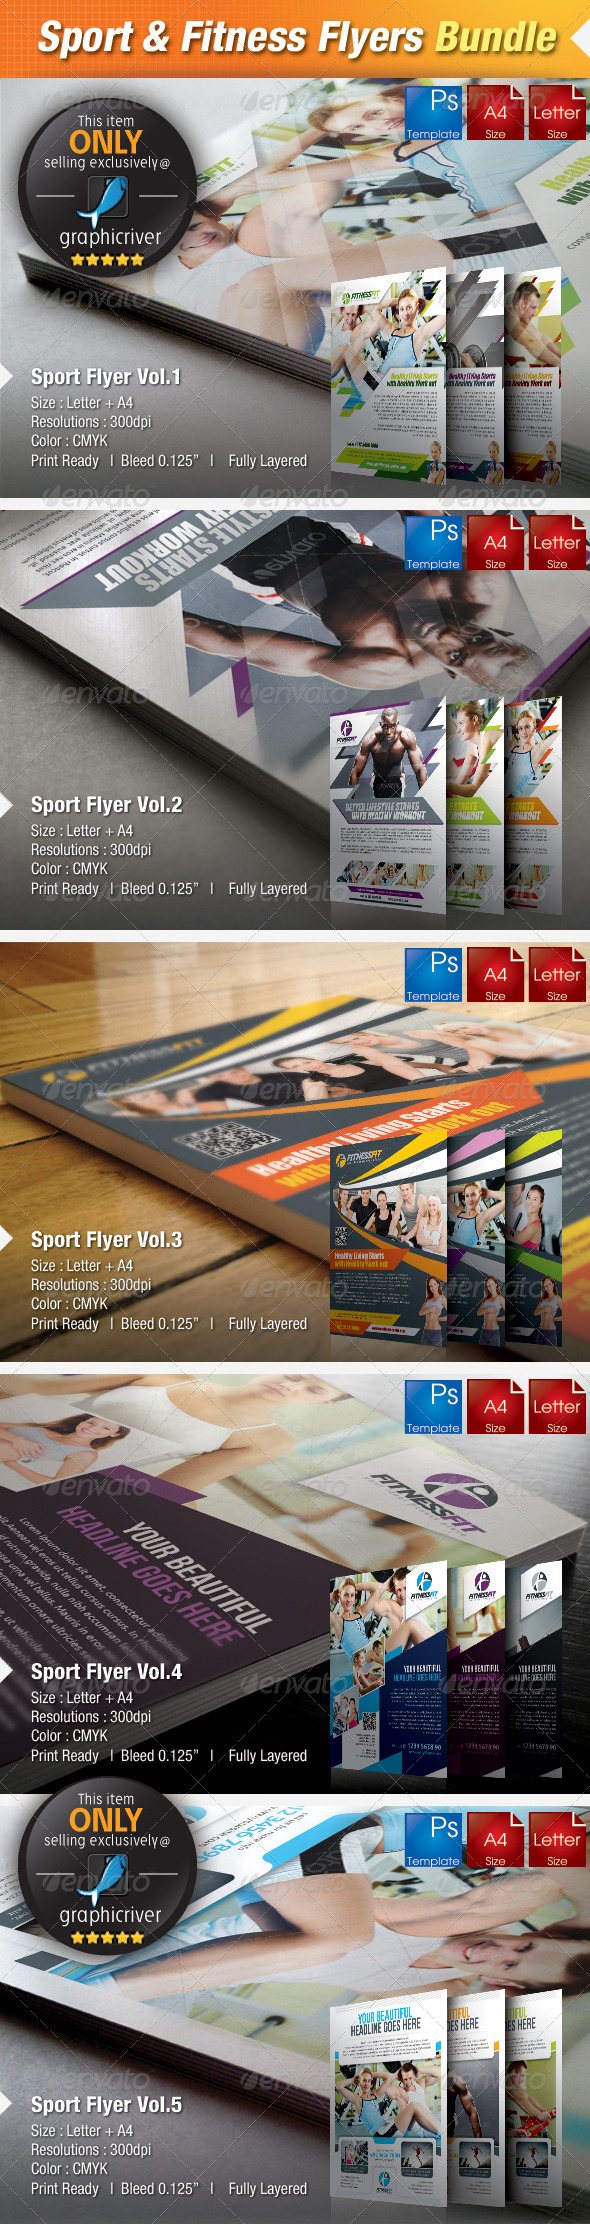 5-in-1 Sport & Fitness Flyers Bundle